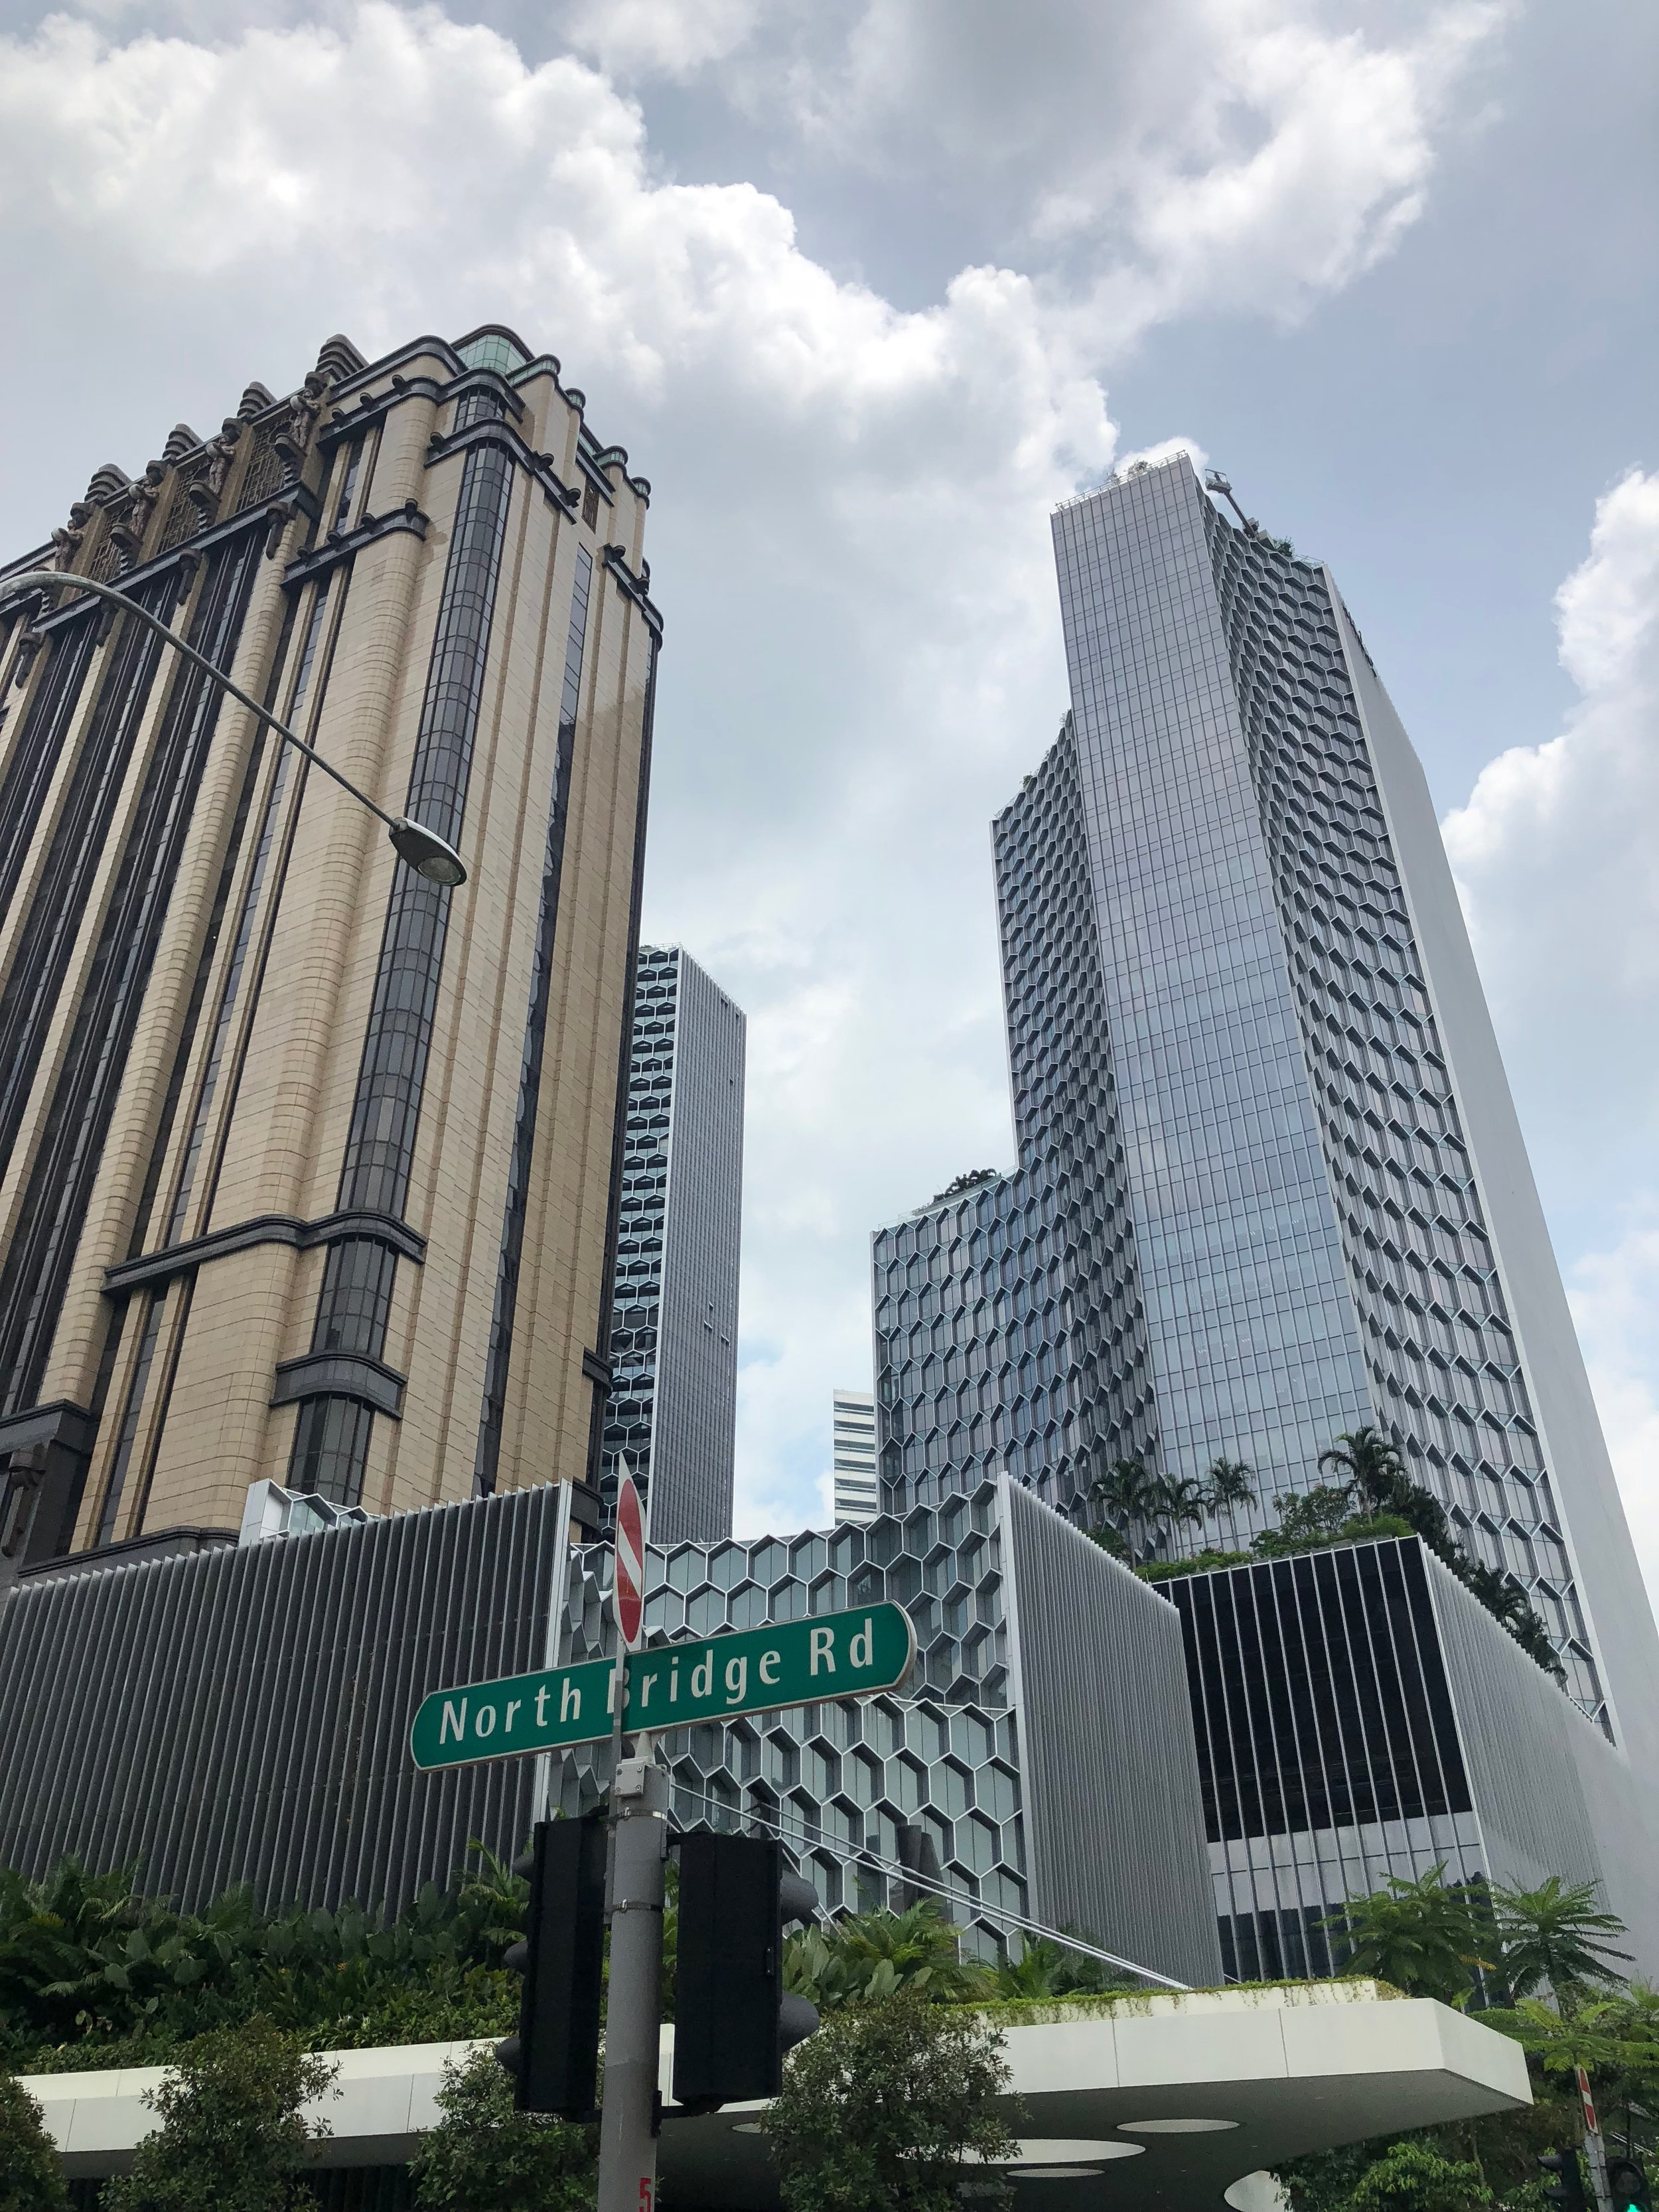 Some of the skyscrapers I got to see during my walks around downtown Singapore, near the Marina Bay Sands.